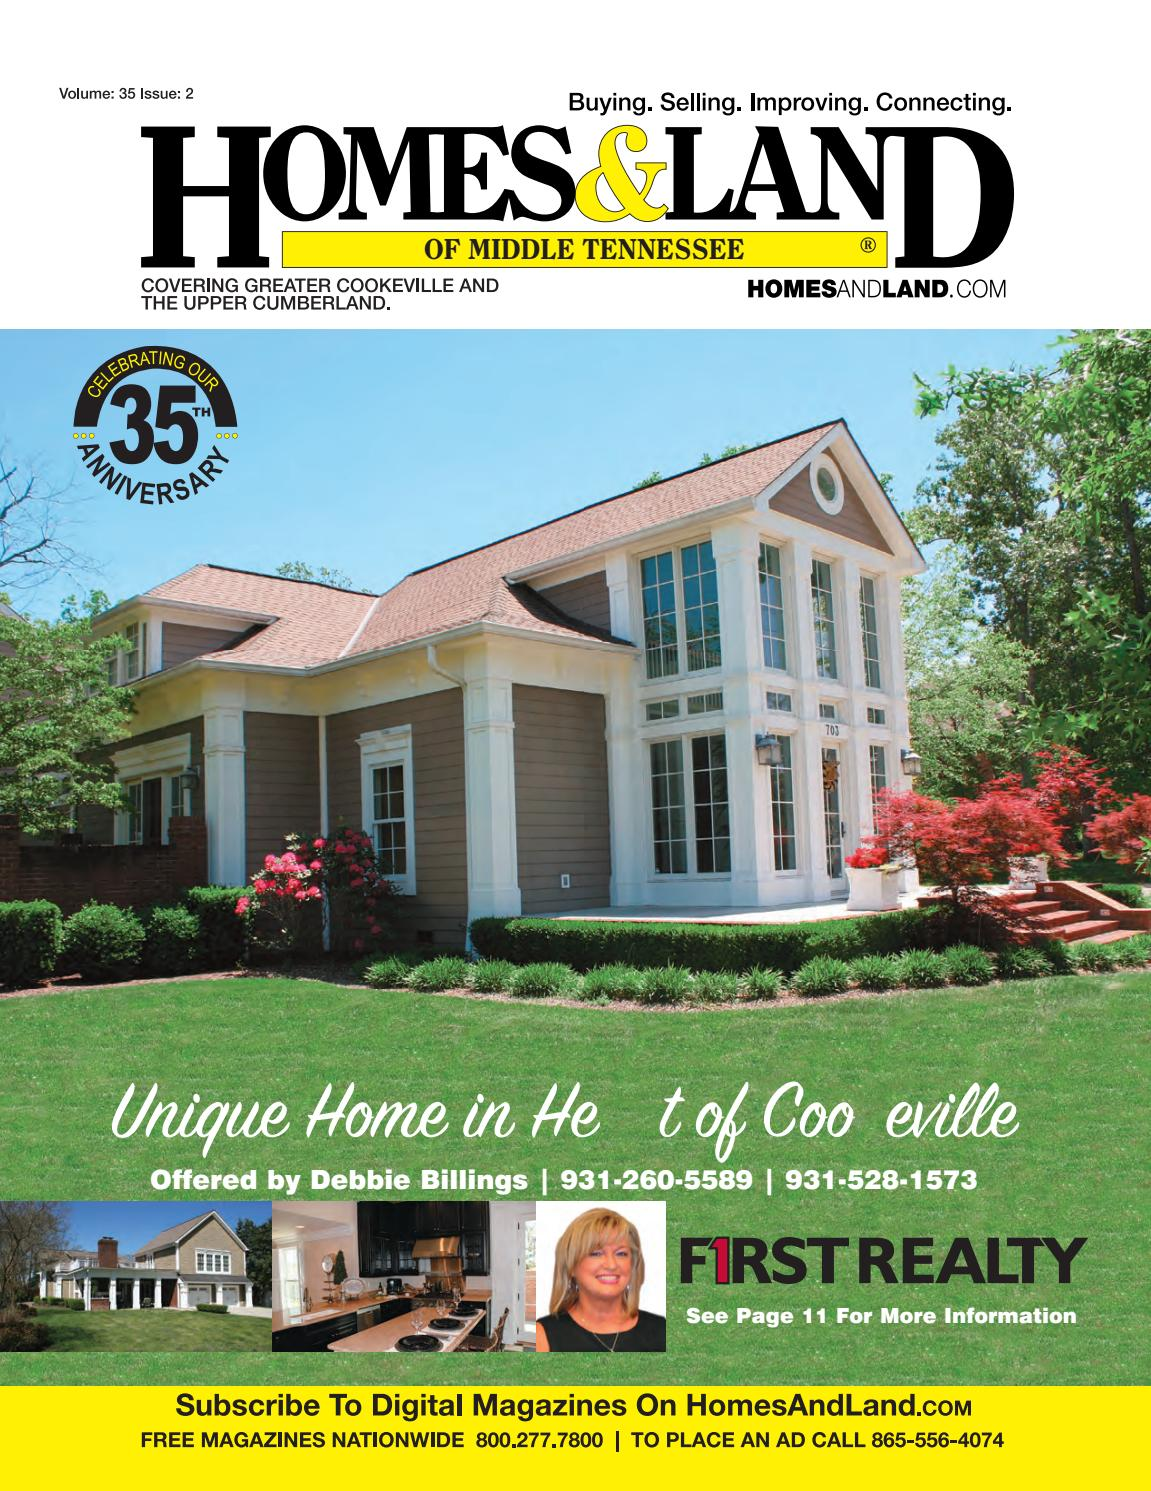 Homes & Land of Middle Tennessee Vol 35 Issue 2 by Homes & Land of